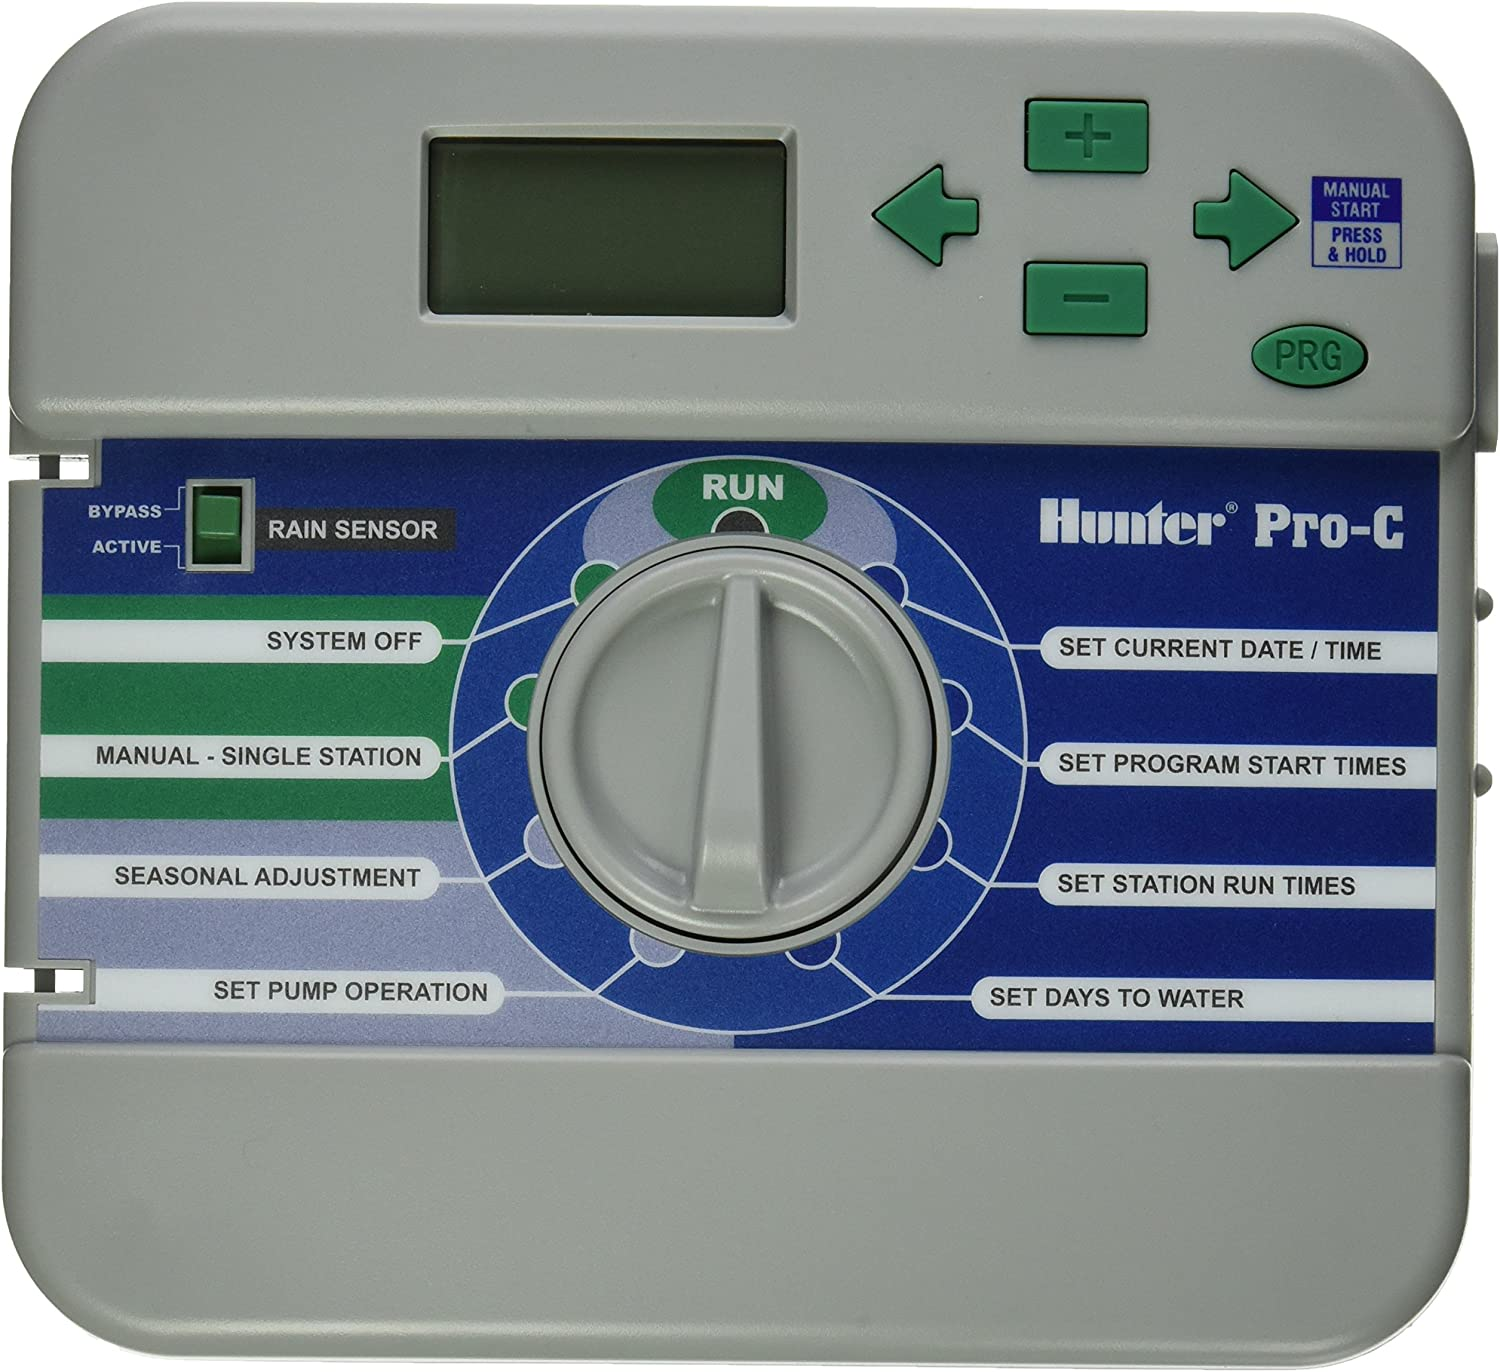 Hunter 526200 FRONT PANEL ONLY - Replacement Faceplate for Pro-C - PC300 / PCC ModelsREPAIR PART - NOT A CONTROLLER